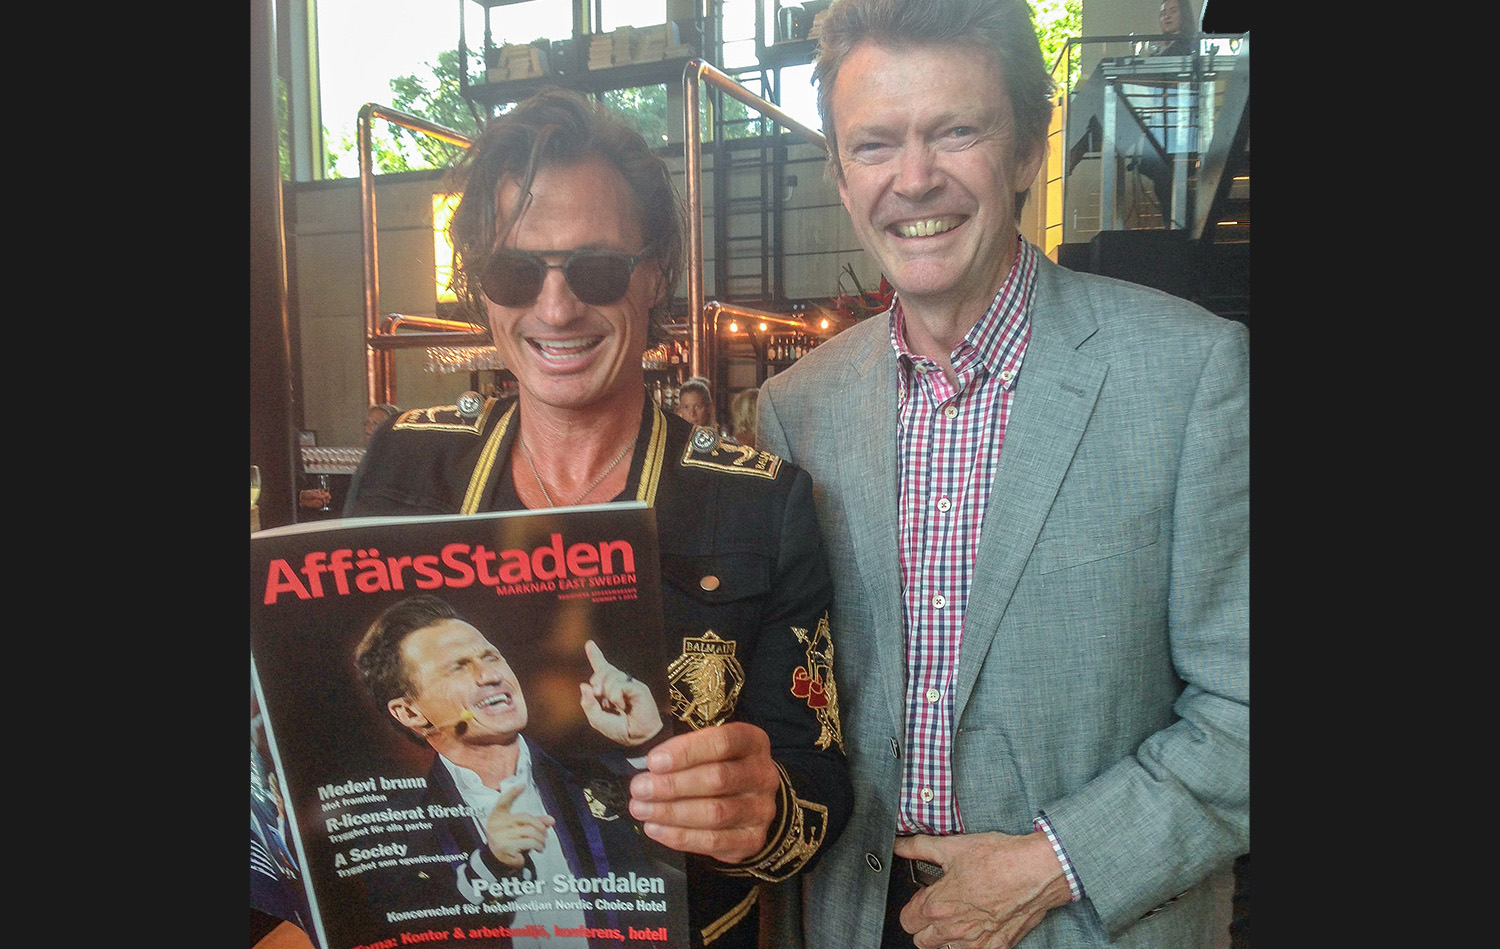 Petter Stordalen invigde Quality Hotel The Box